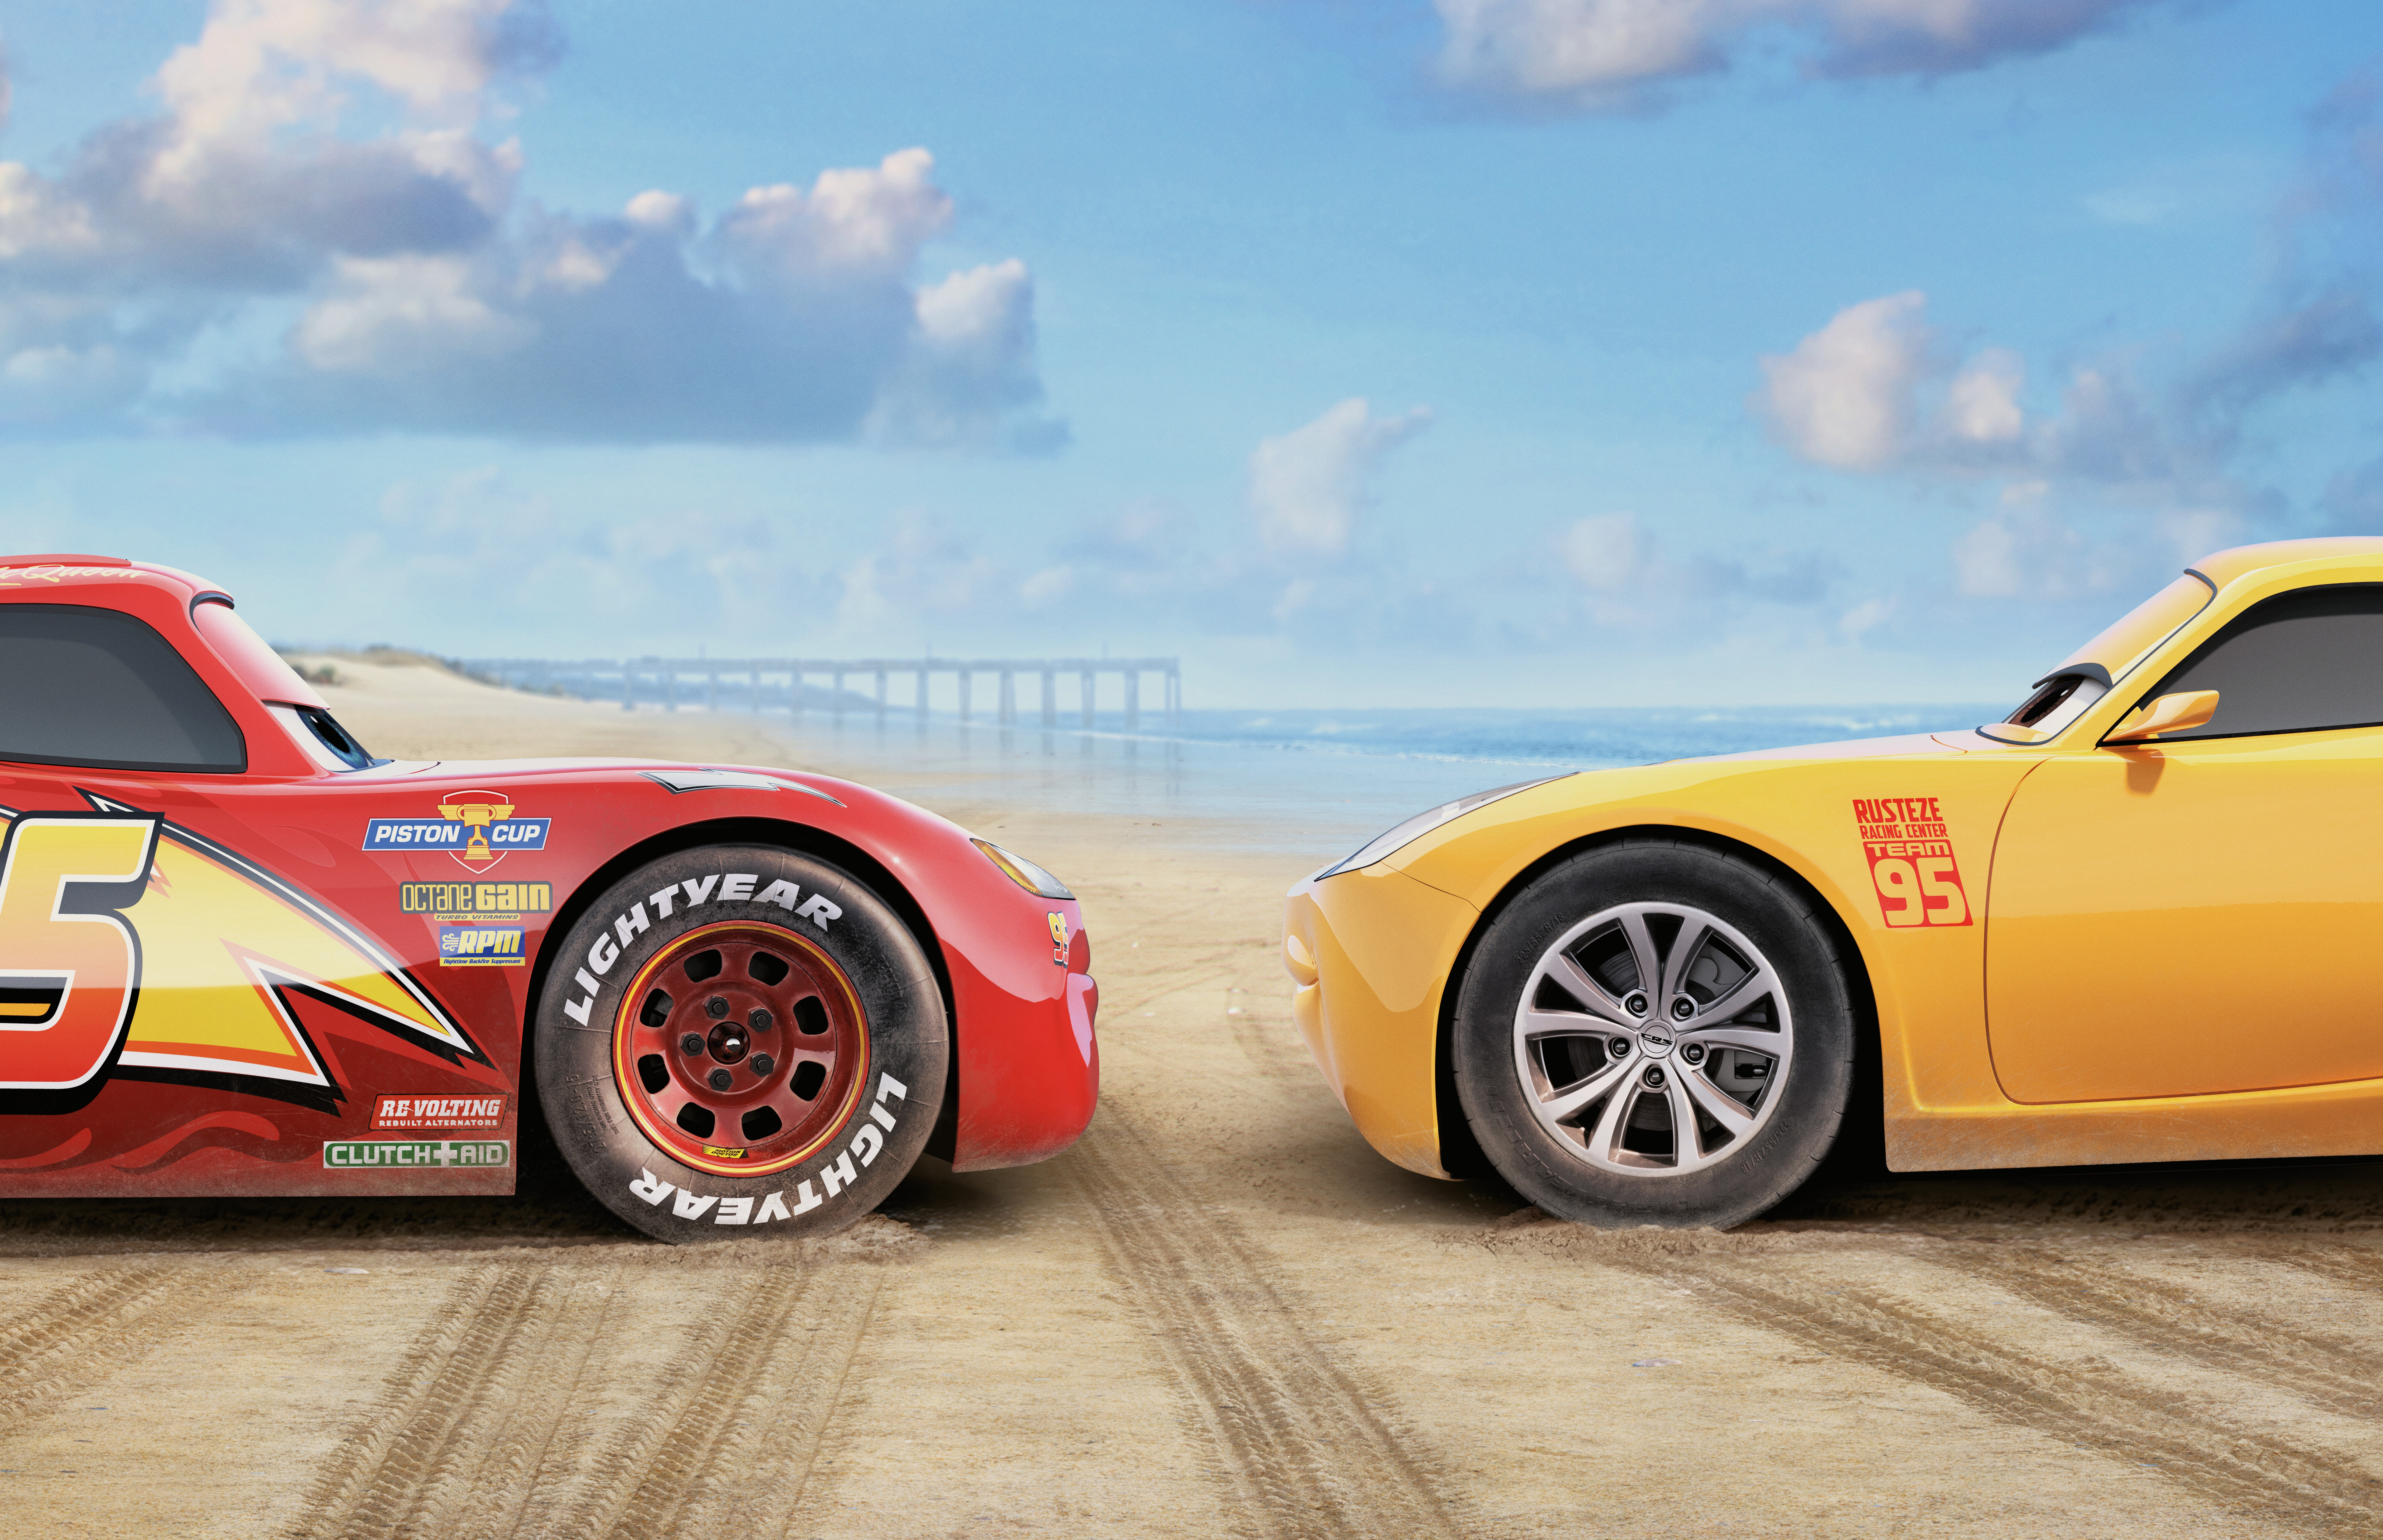 28 Cars 3 Hd Wallpapers Background Images Wallpaper Abyss